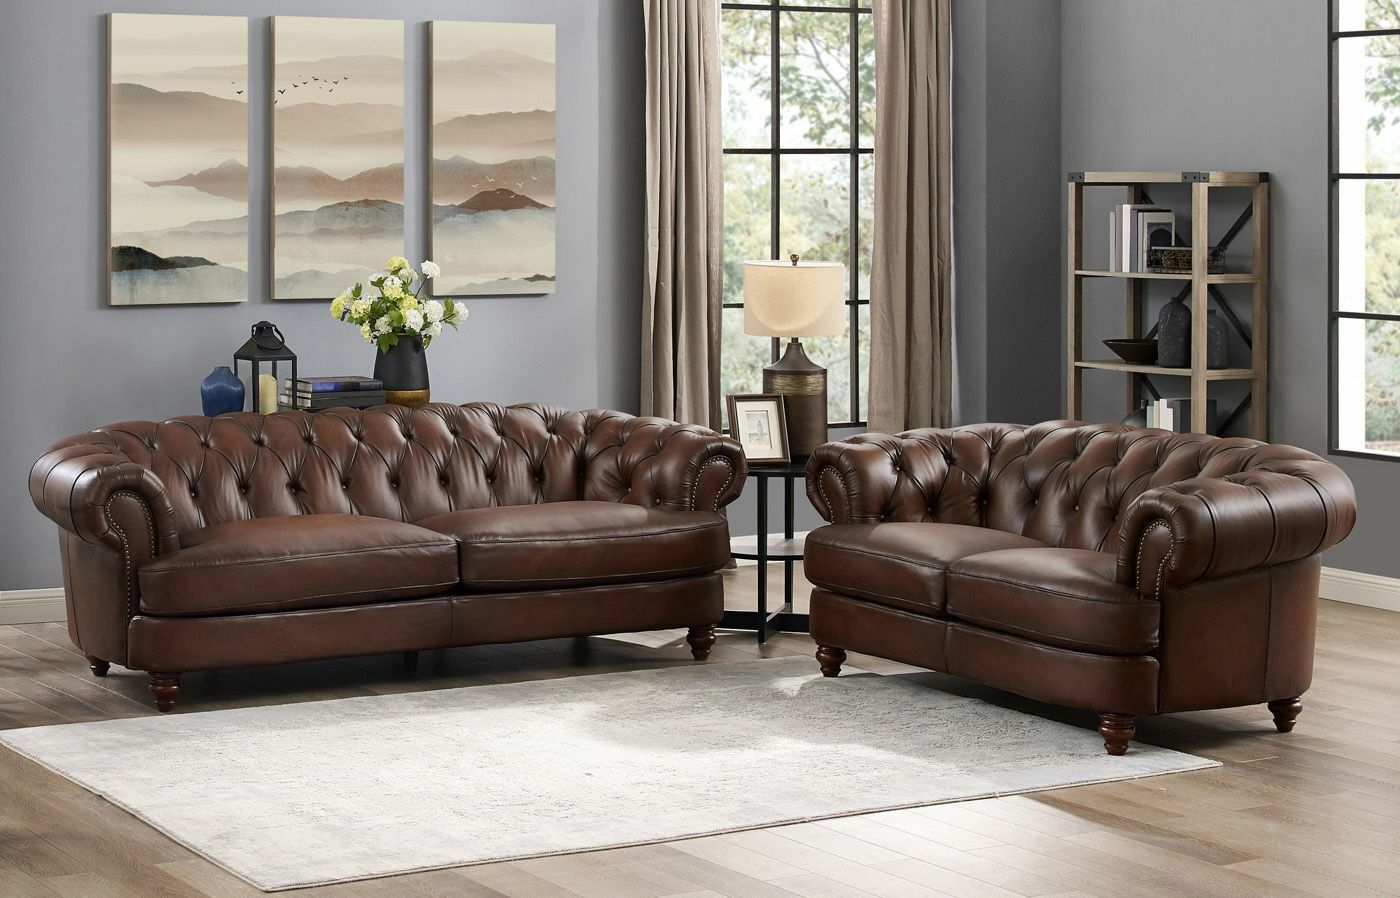 Details About Mario Top Grain Genuine Brown Leather Chesterfield Sofa Loveseat Living Room Set